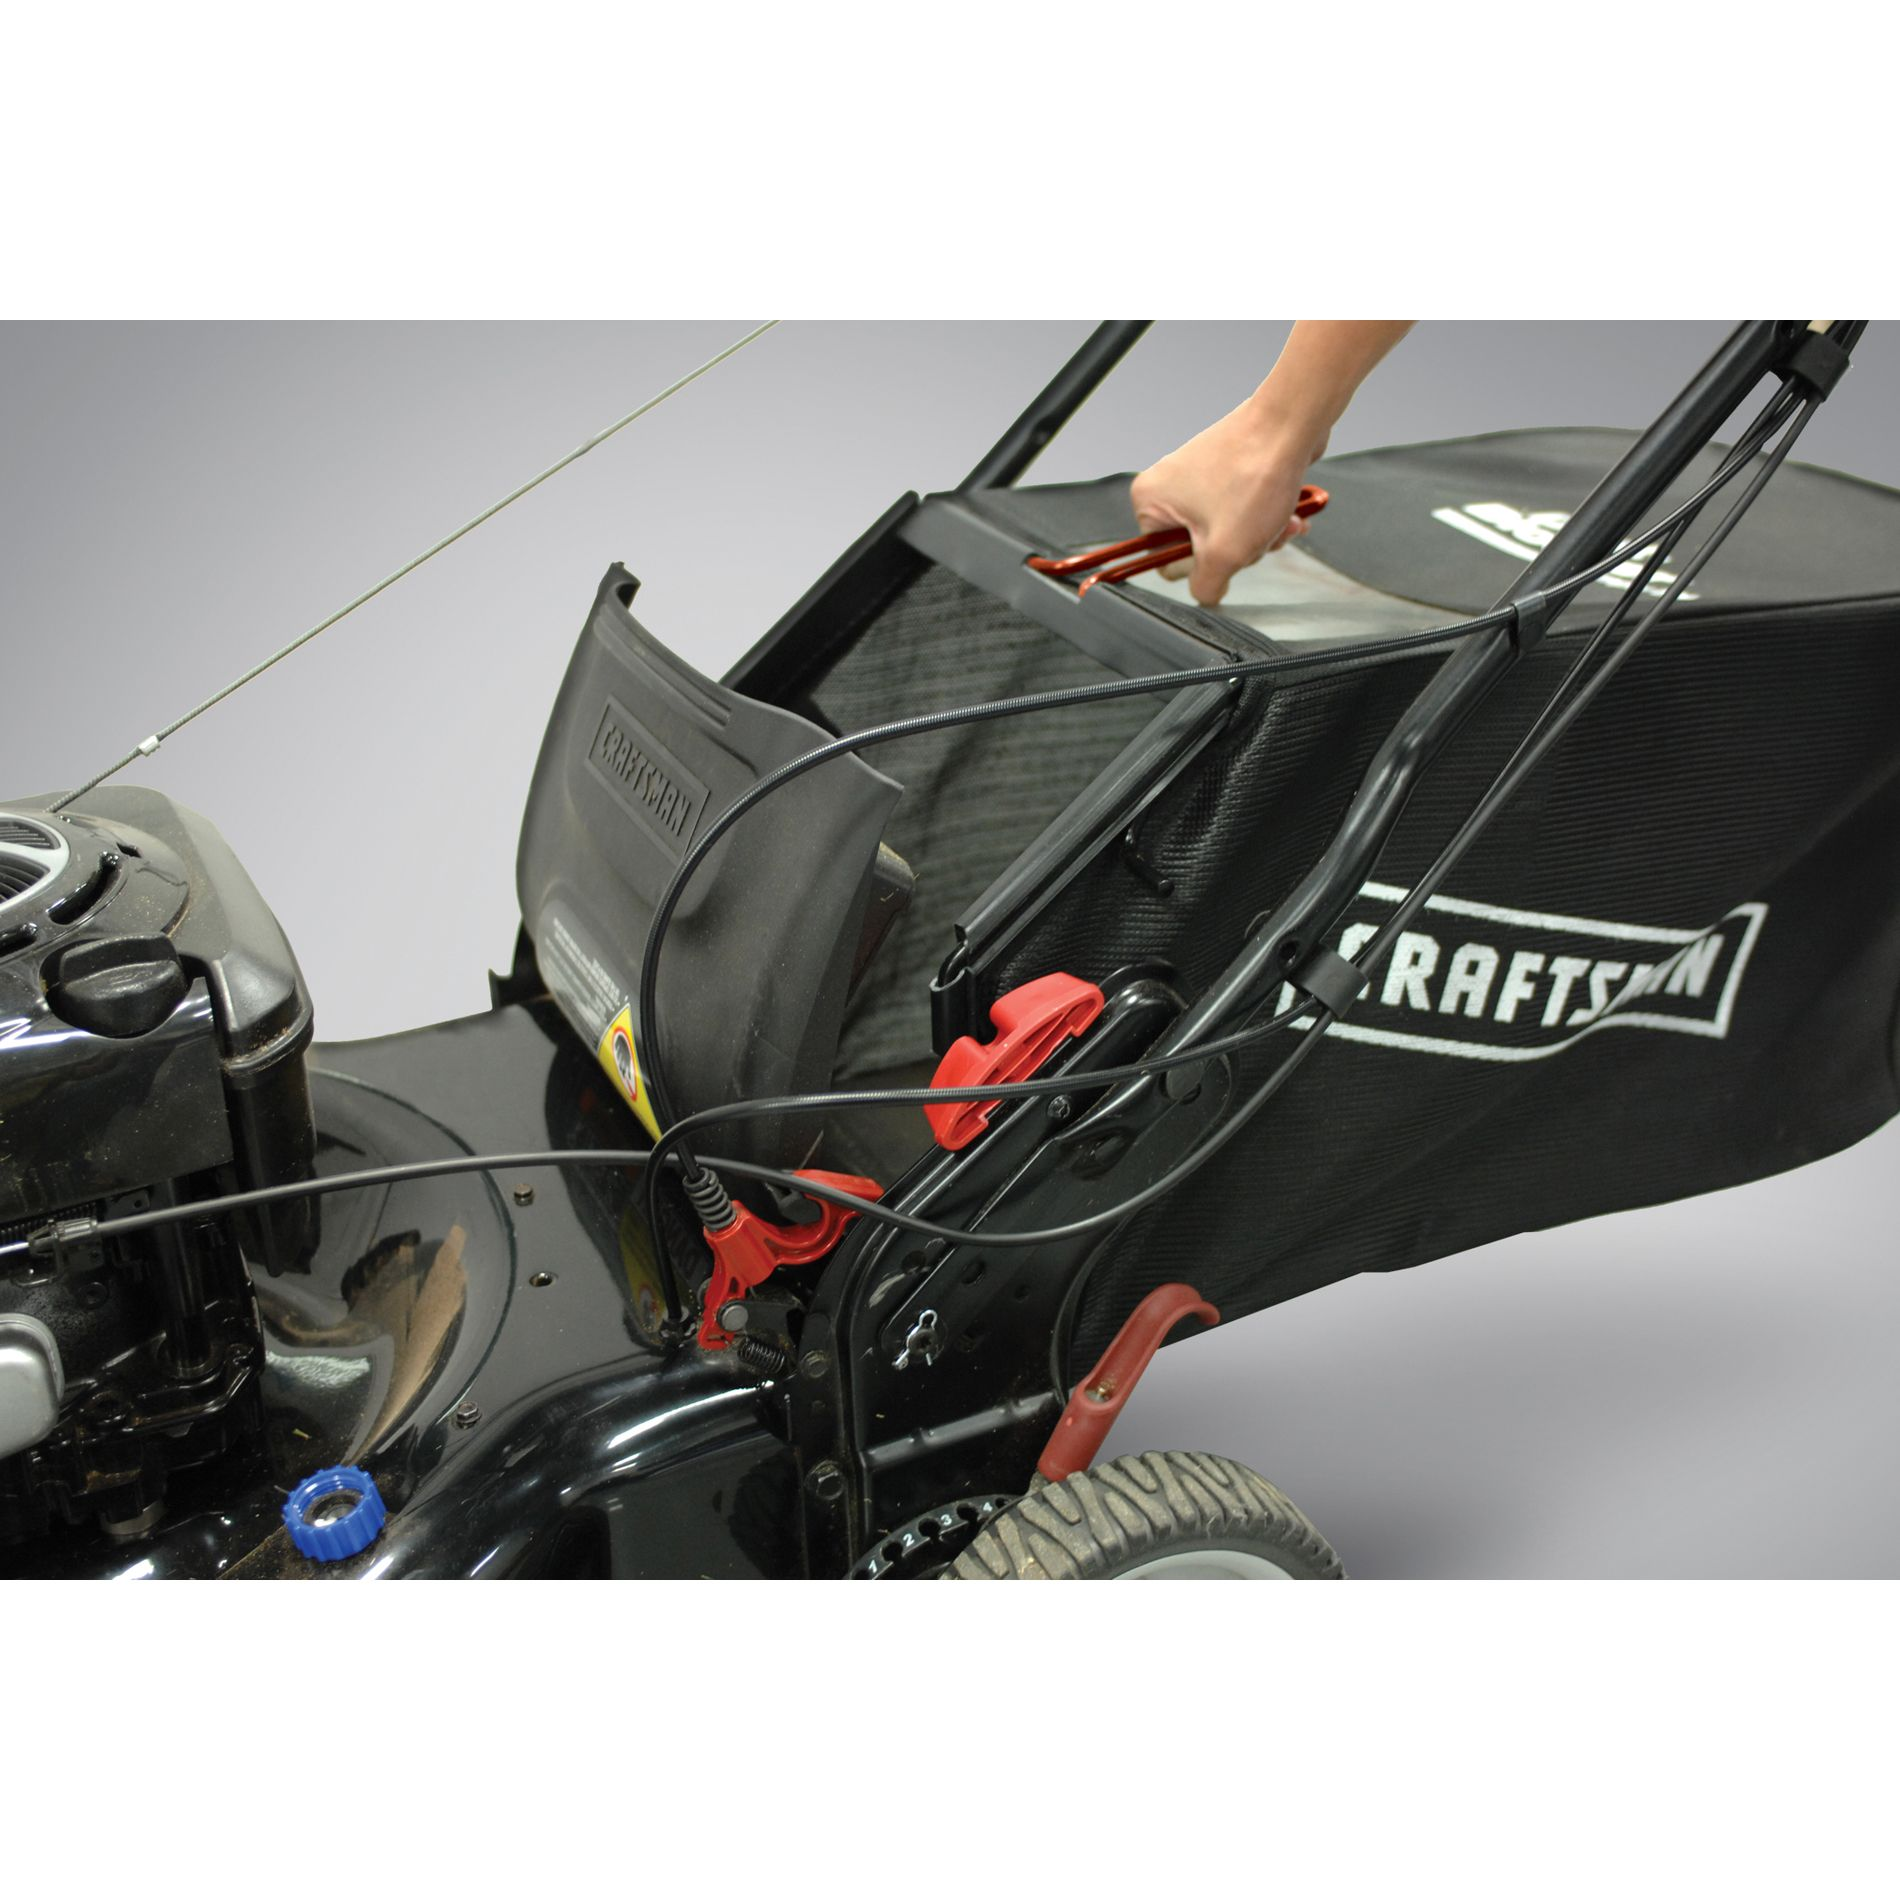 "Craftsman 190cc* 22"" Rear Drive Self-Propelled EZ Lawn Mower–50 States"